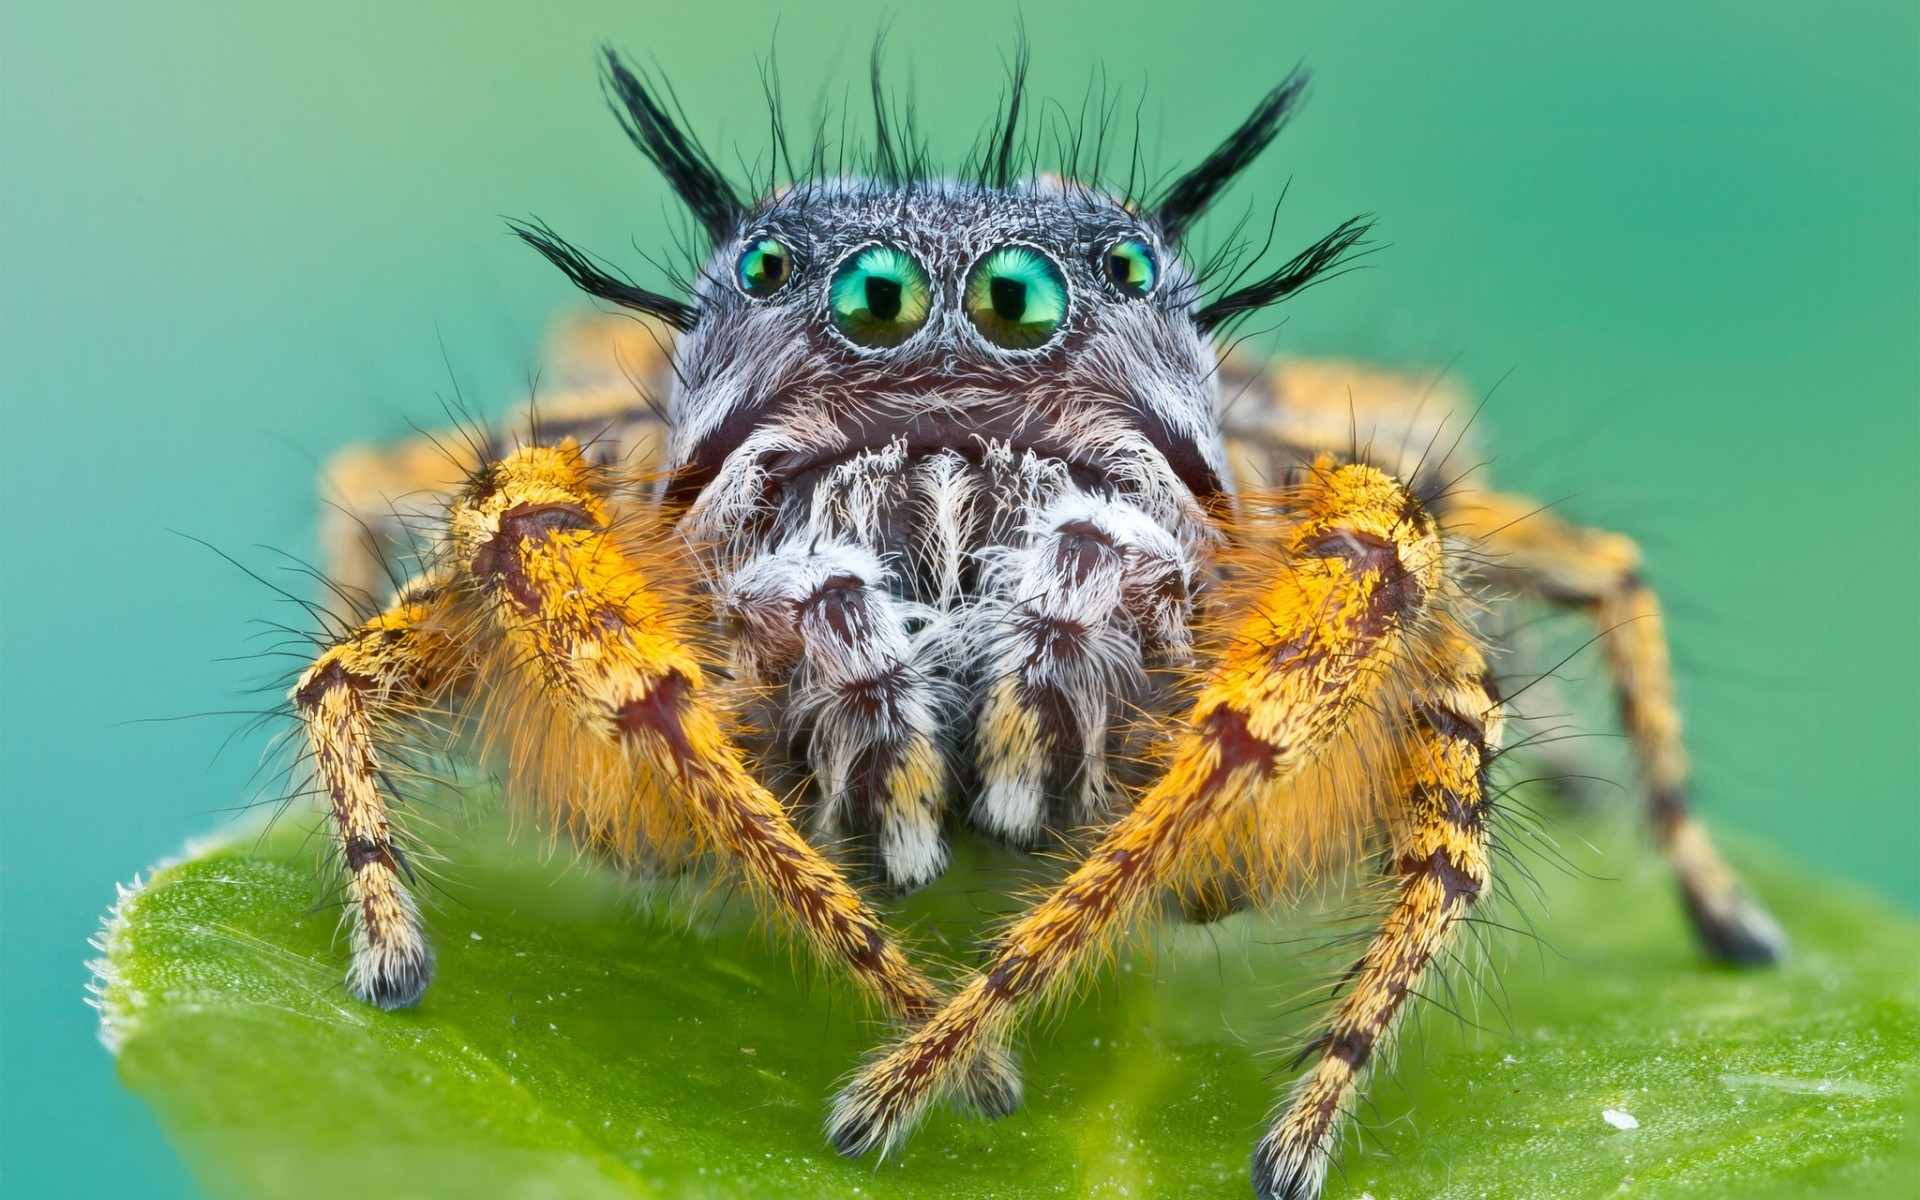 Animals insects spider face eyes creepy spooky legs alien wallpaper |  | 27035 | WallpaperUP